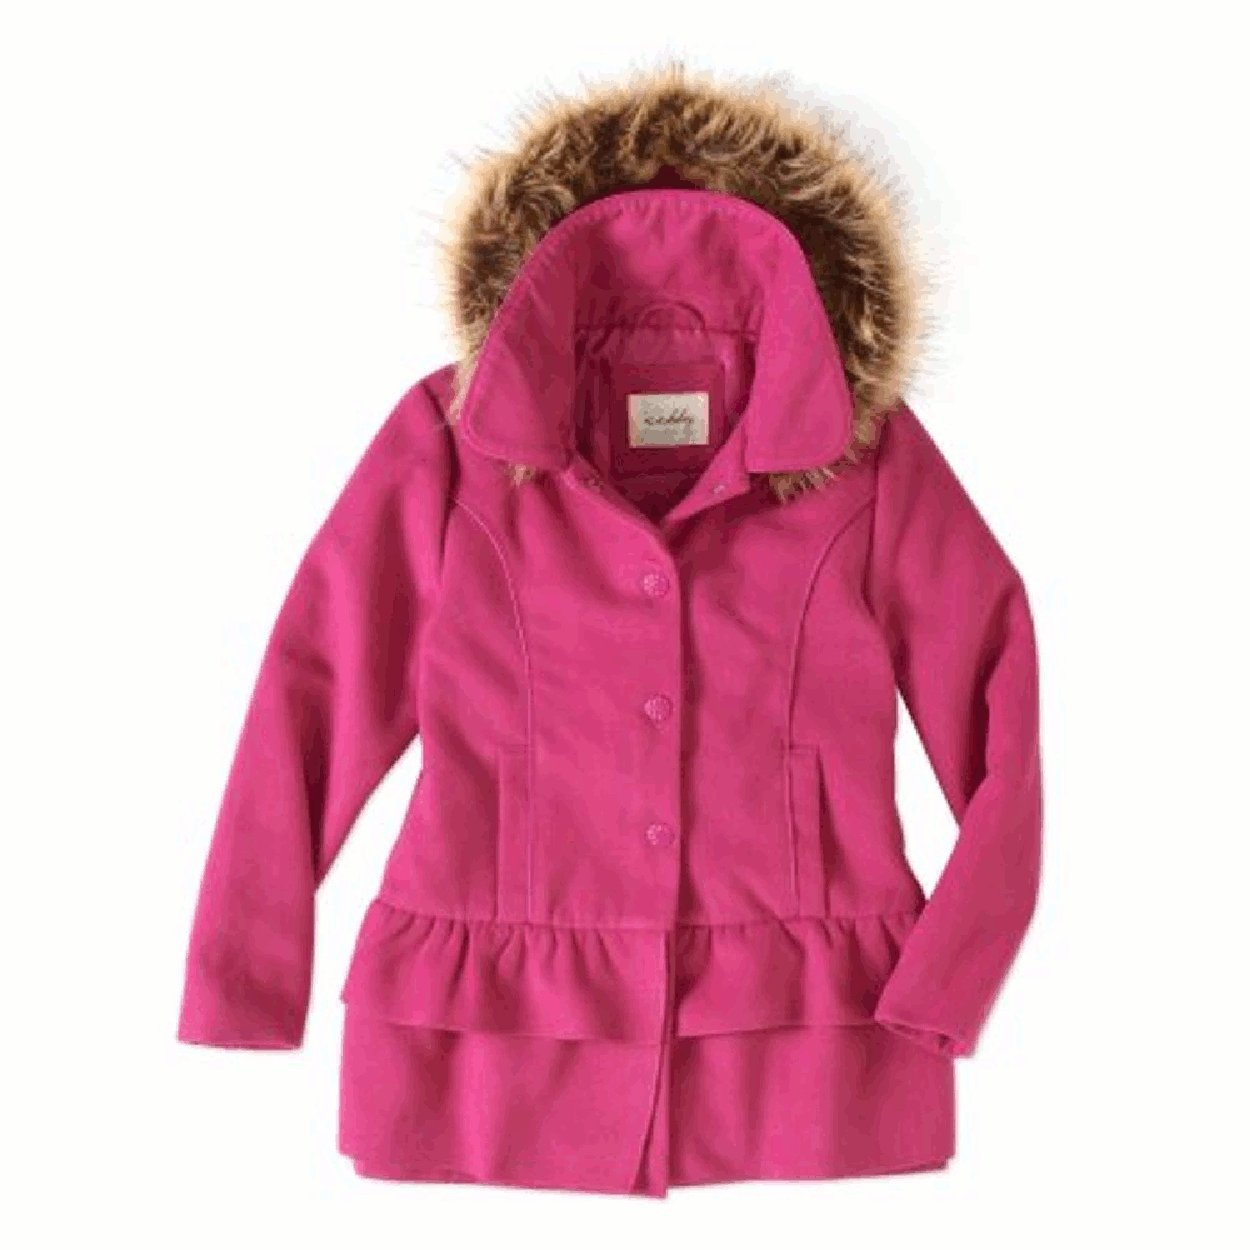 Sebby Baby Toddler Girl Fleece Ruffle Tiered Coat with Faux Fur Hood